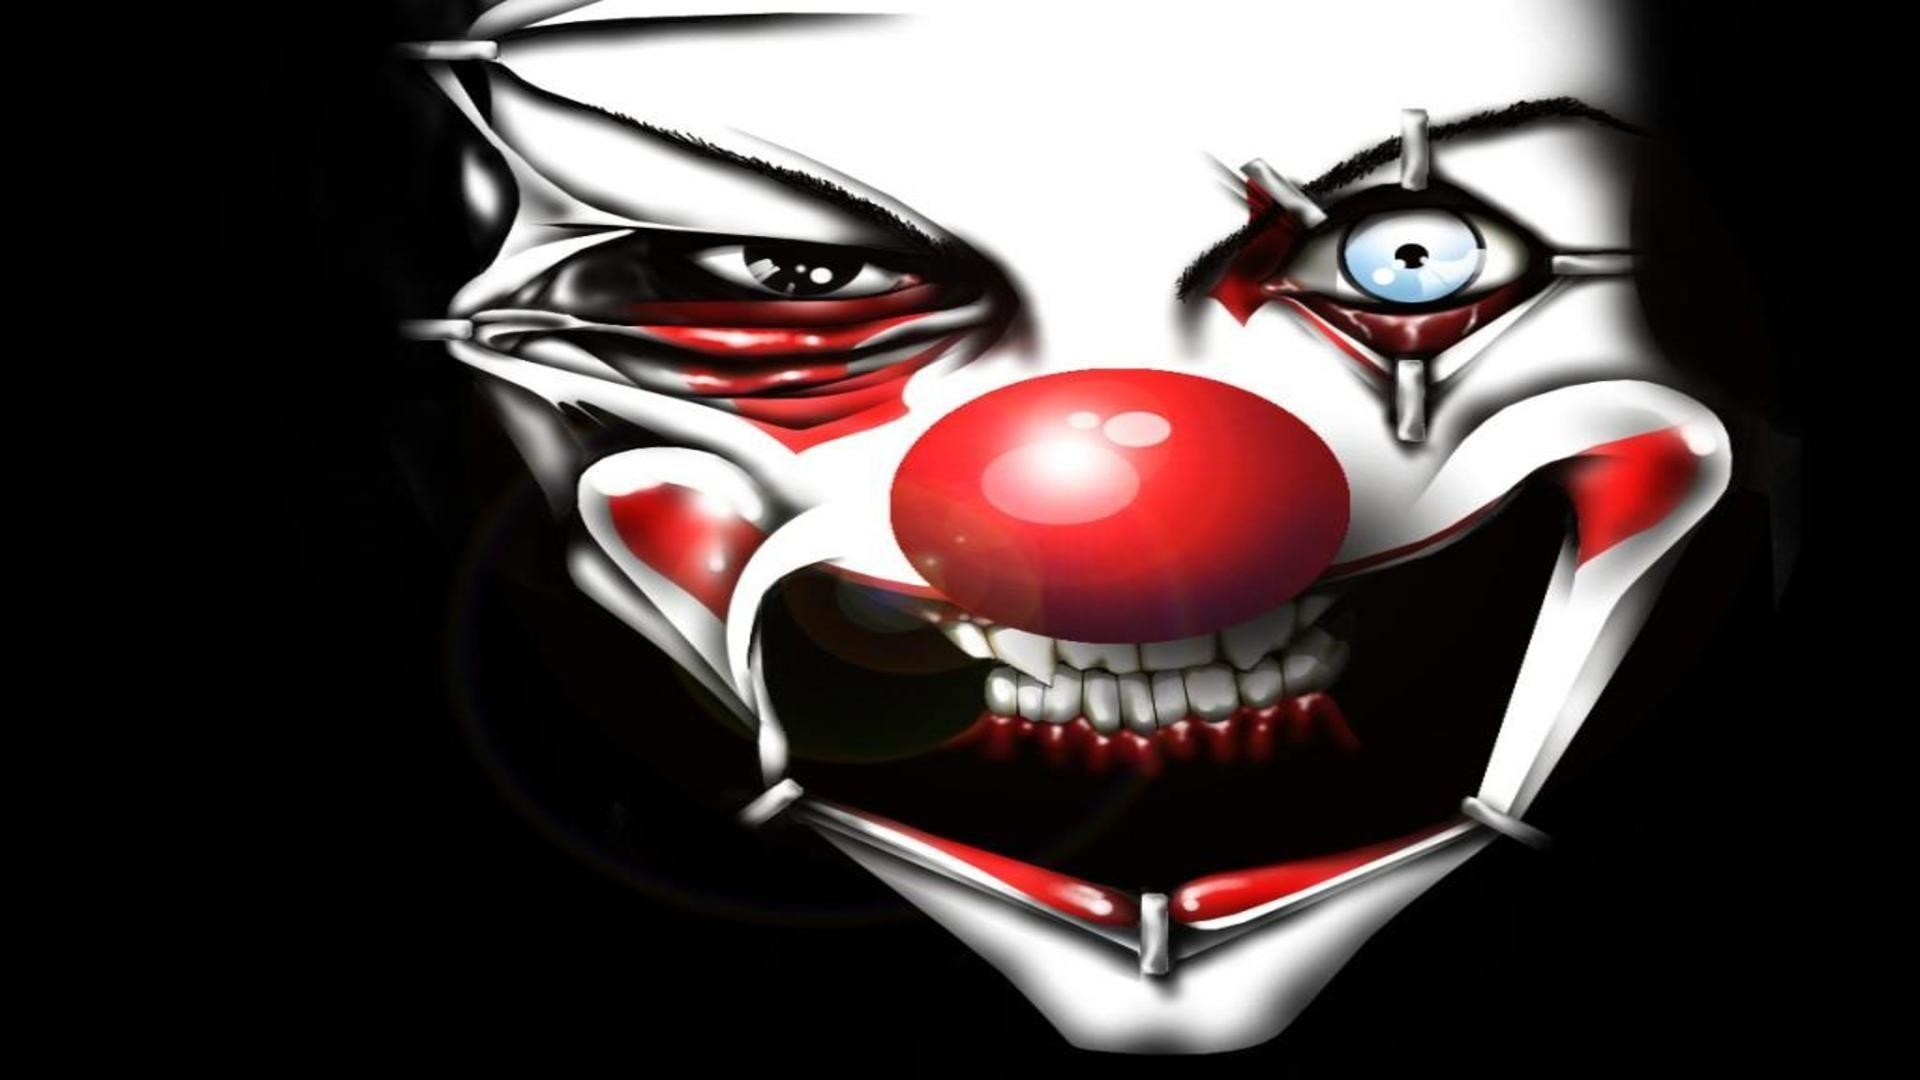 Res: 1920x1080, scary clown wallpapers desktop Evil Clown Wallpapers Desktop